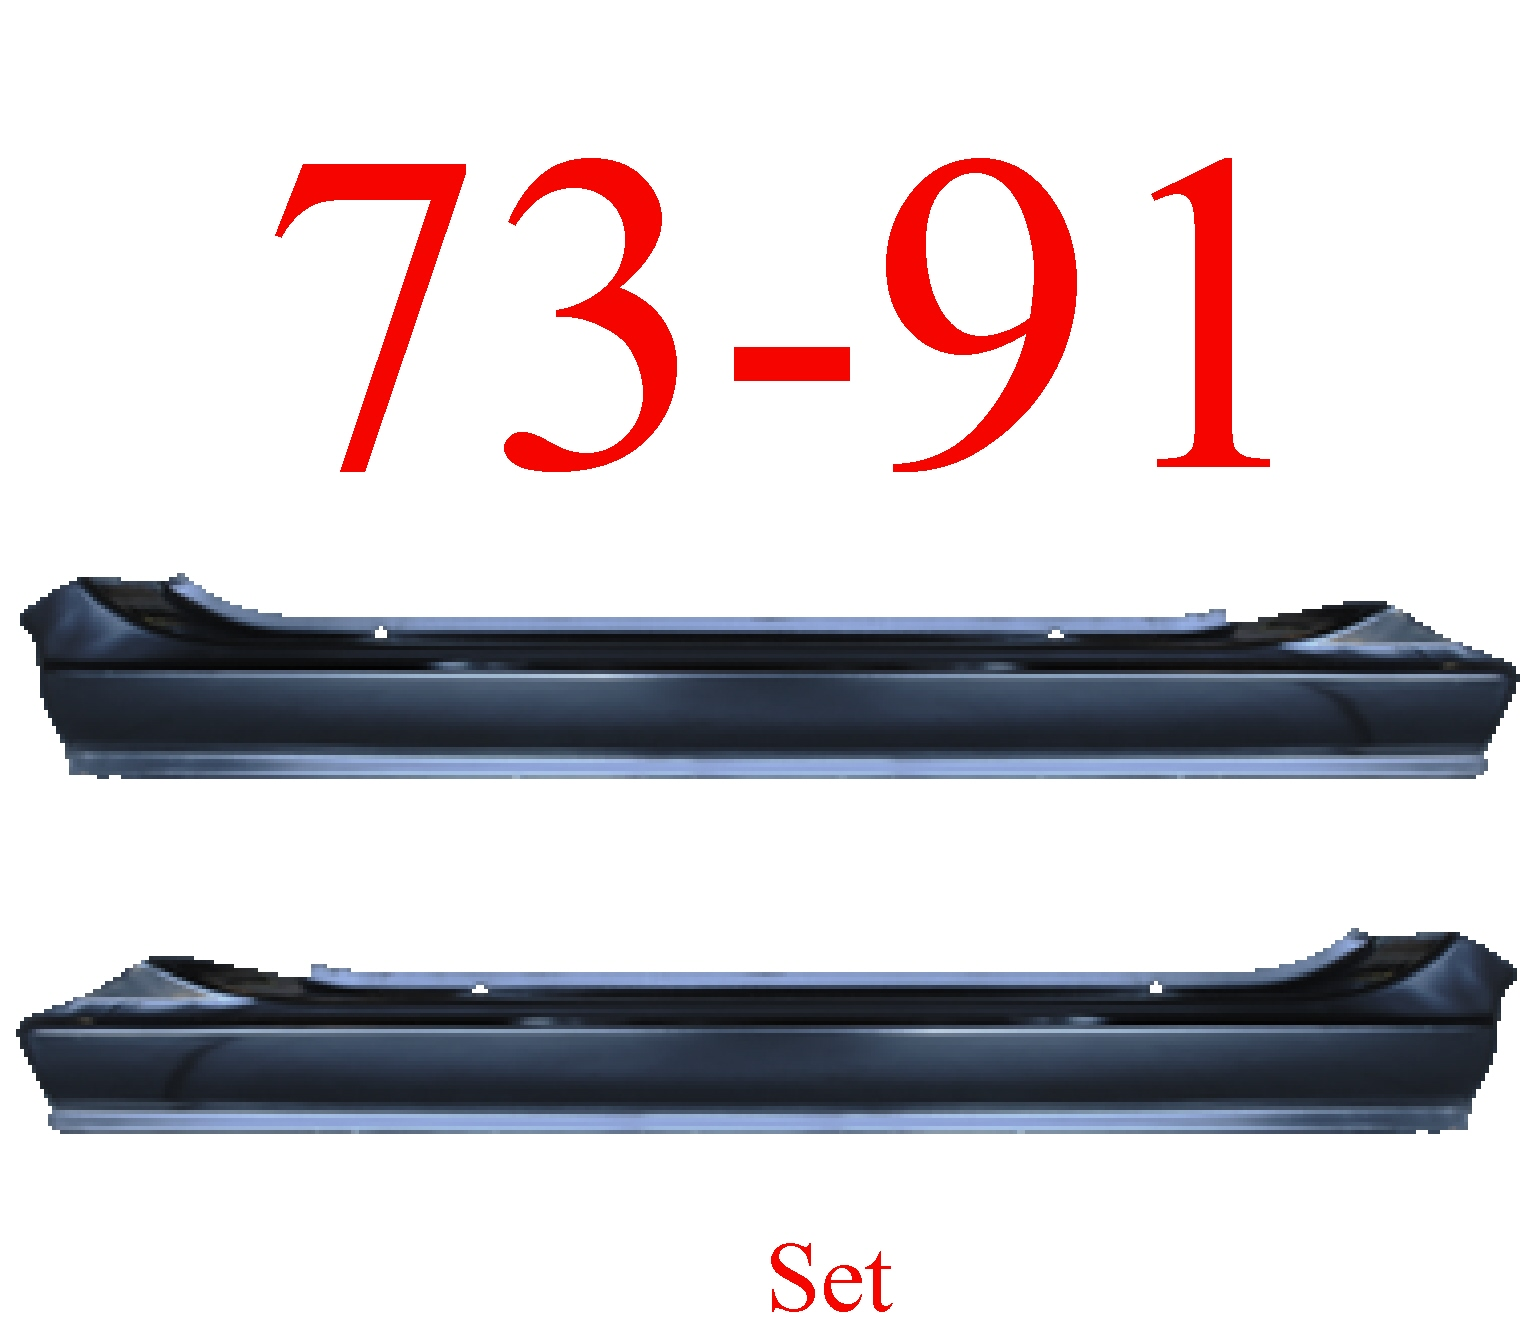 73-91 Chevy Blazer Slip-on Rocker Set